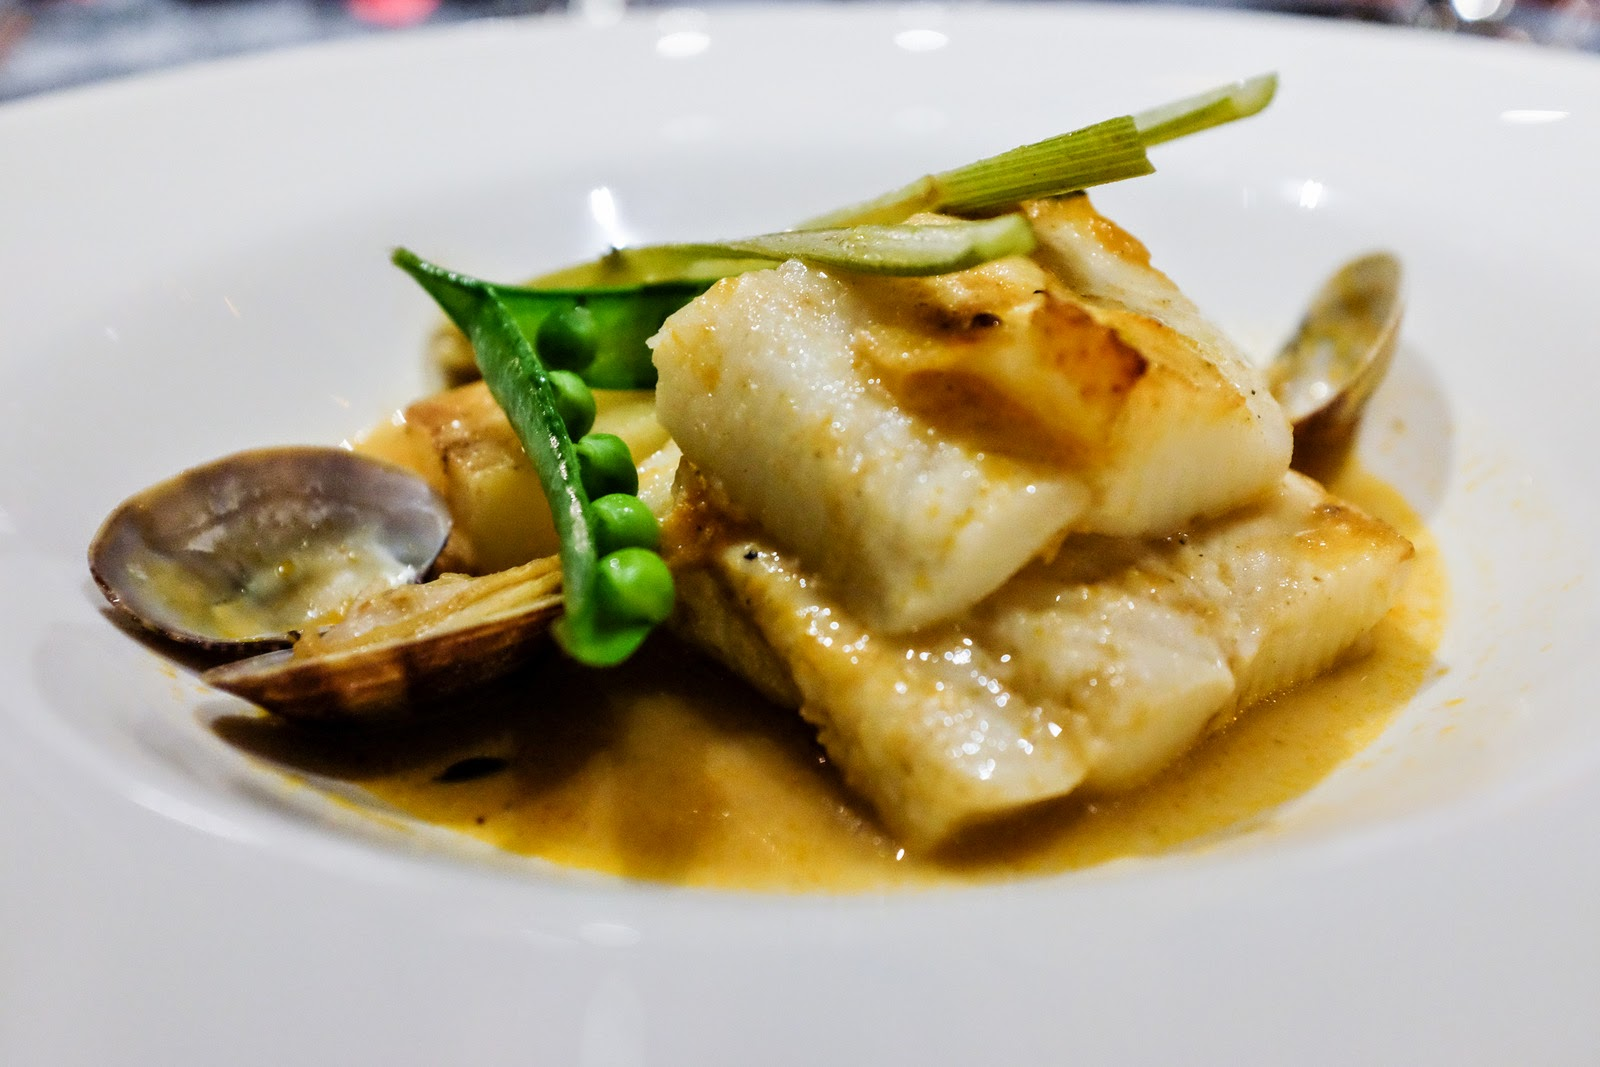 Slow-poached halibut, flaky & fresh-tasting, in a briny broth that ...